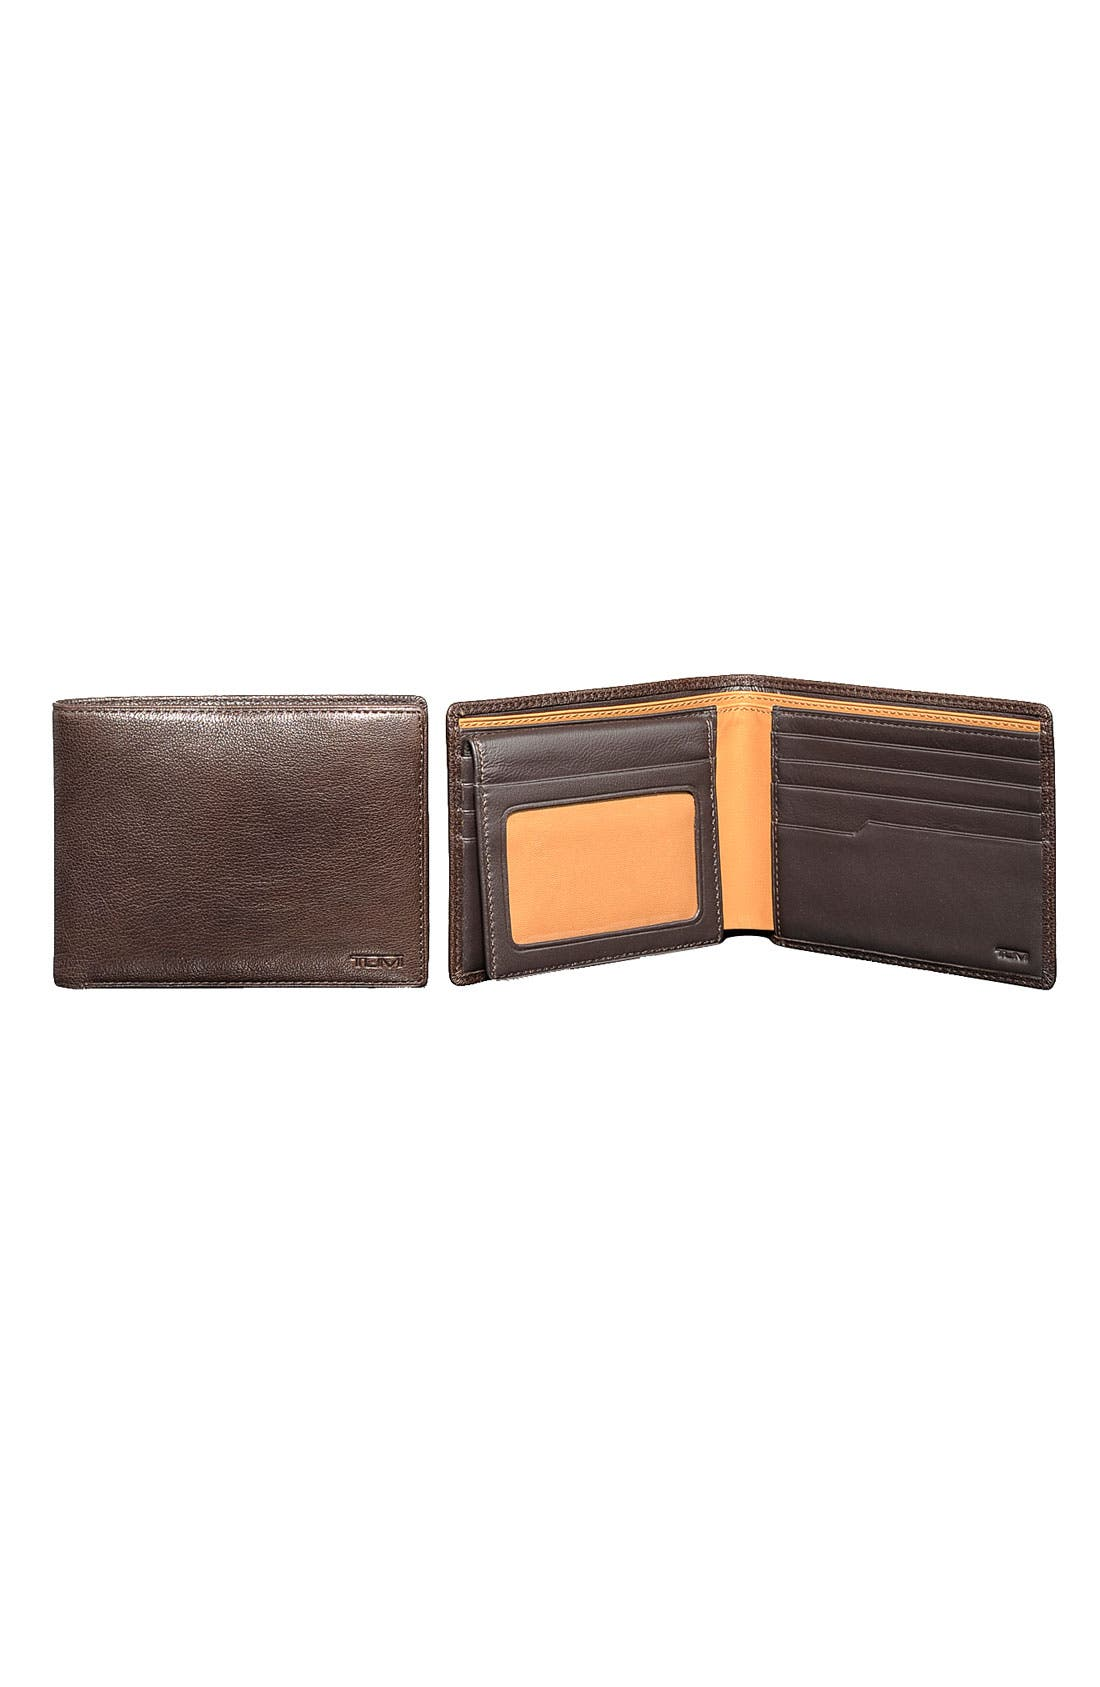 Main Image - Tumi 'Sierra - Global' Removable Passcase ID Wallet